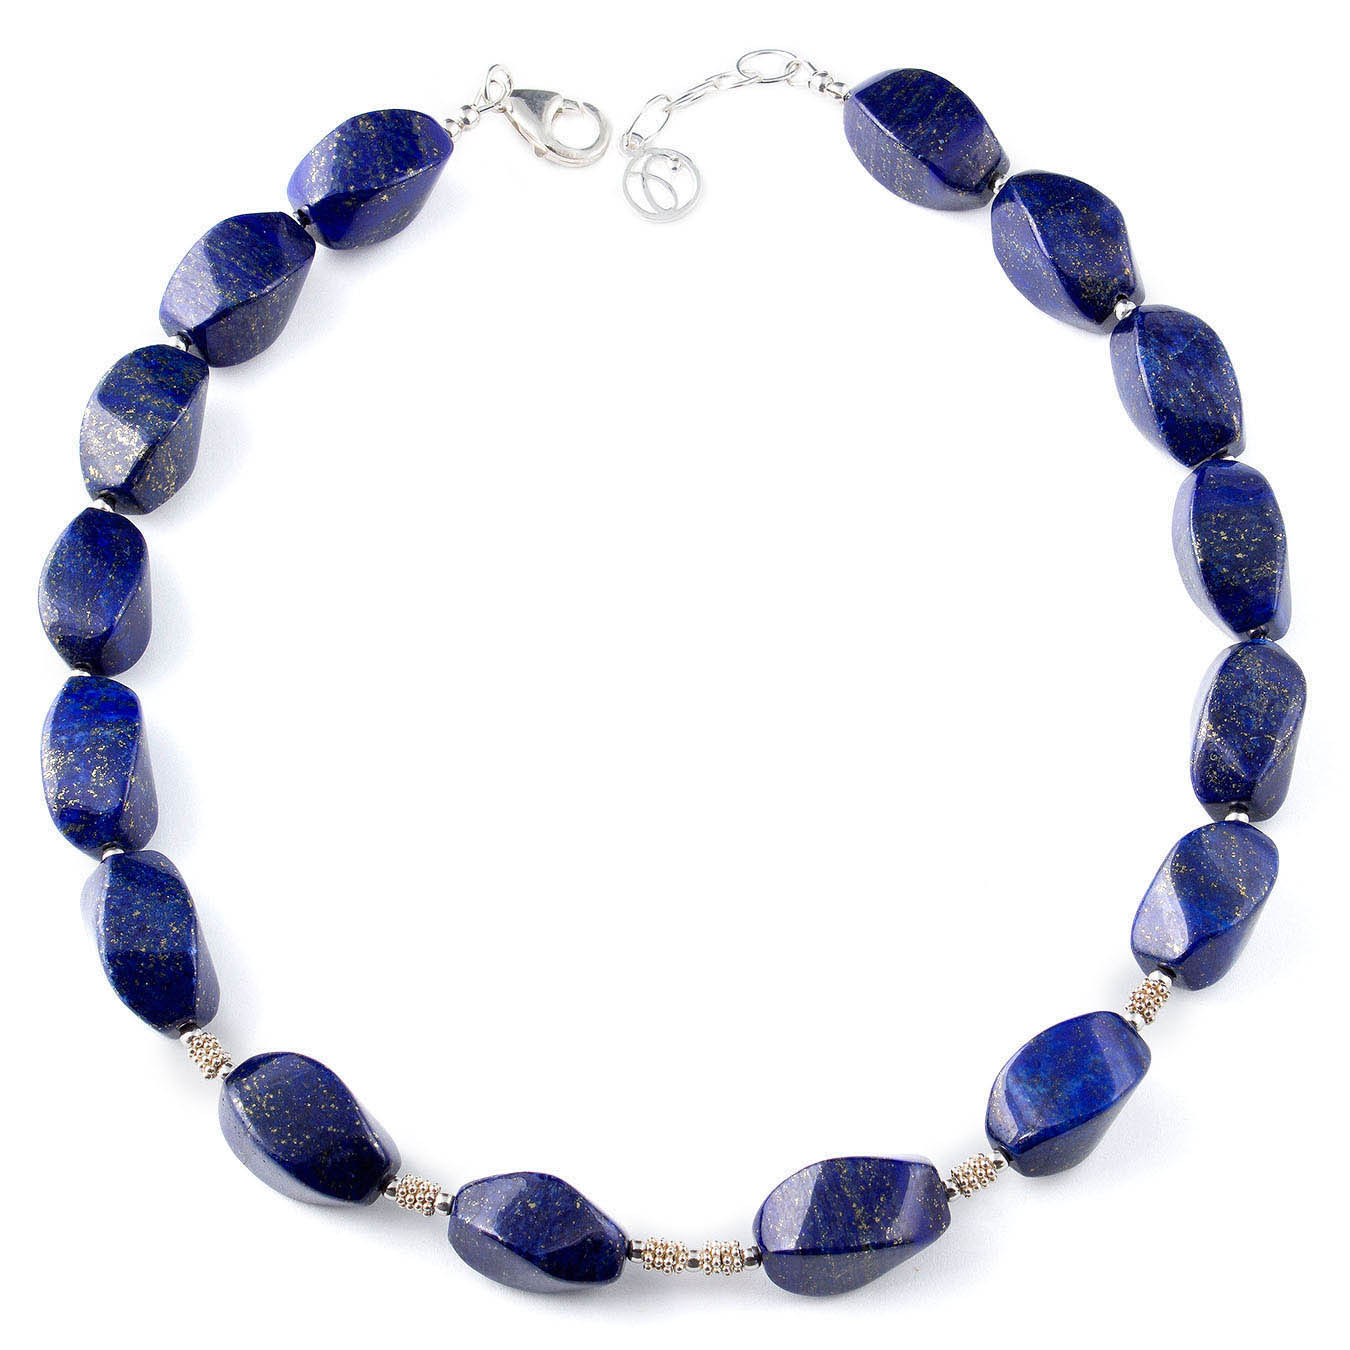 Handcrafted semi-precious bead jewelry made with twisted lapis lazuli